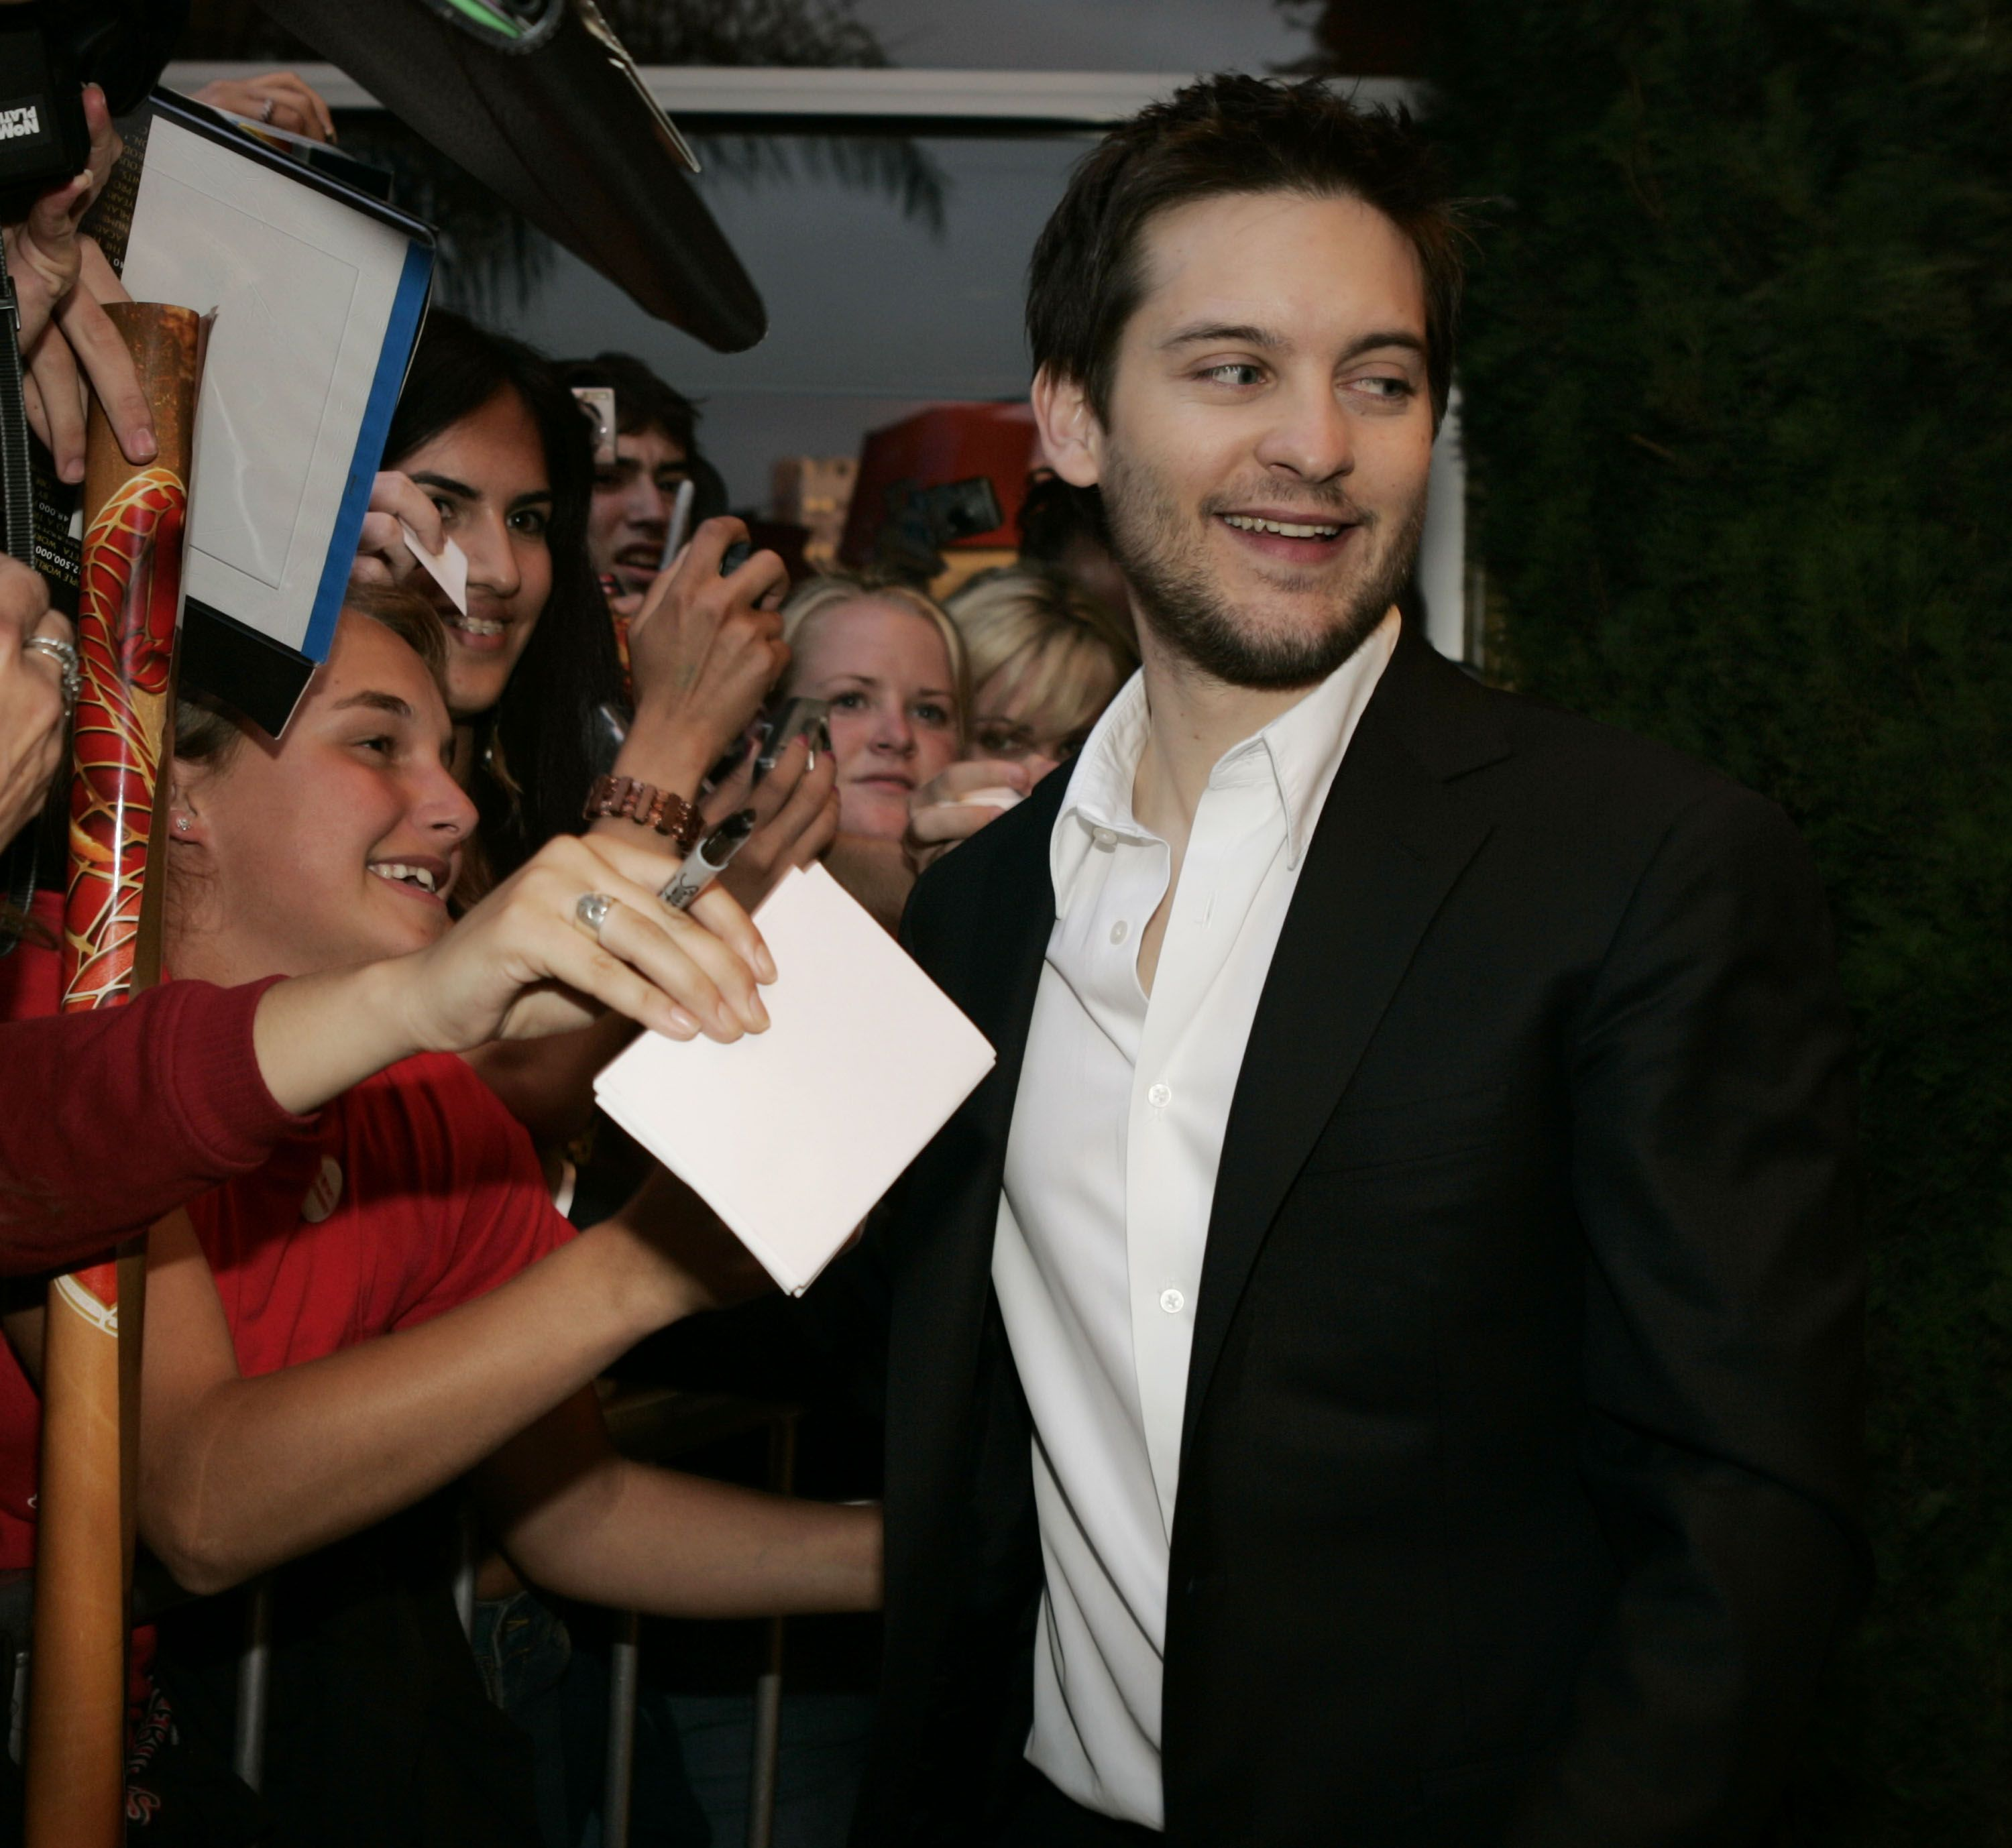 Tobey Maguire Giving Out Autographs / Getty Images